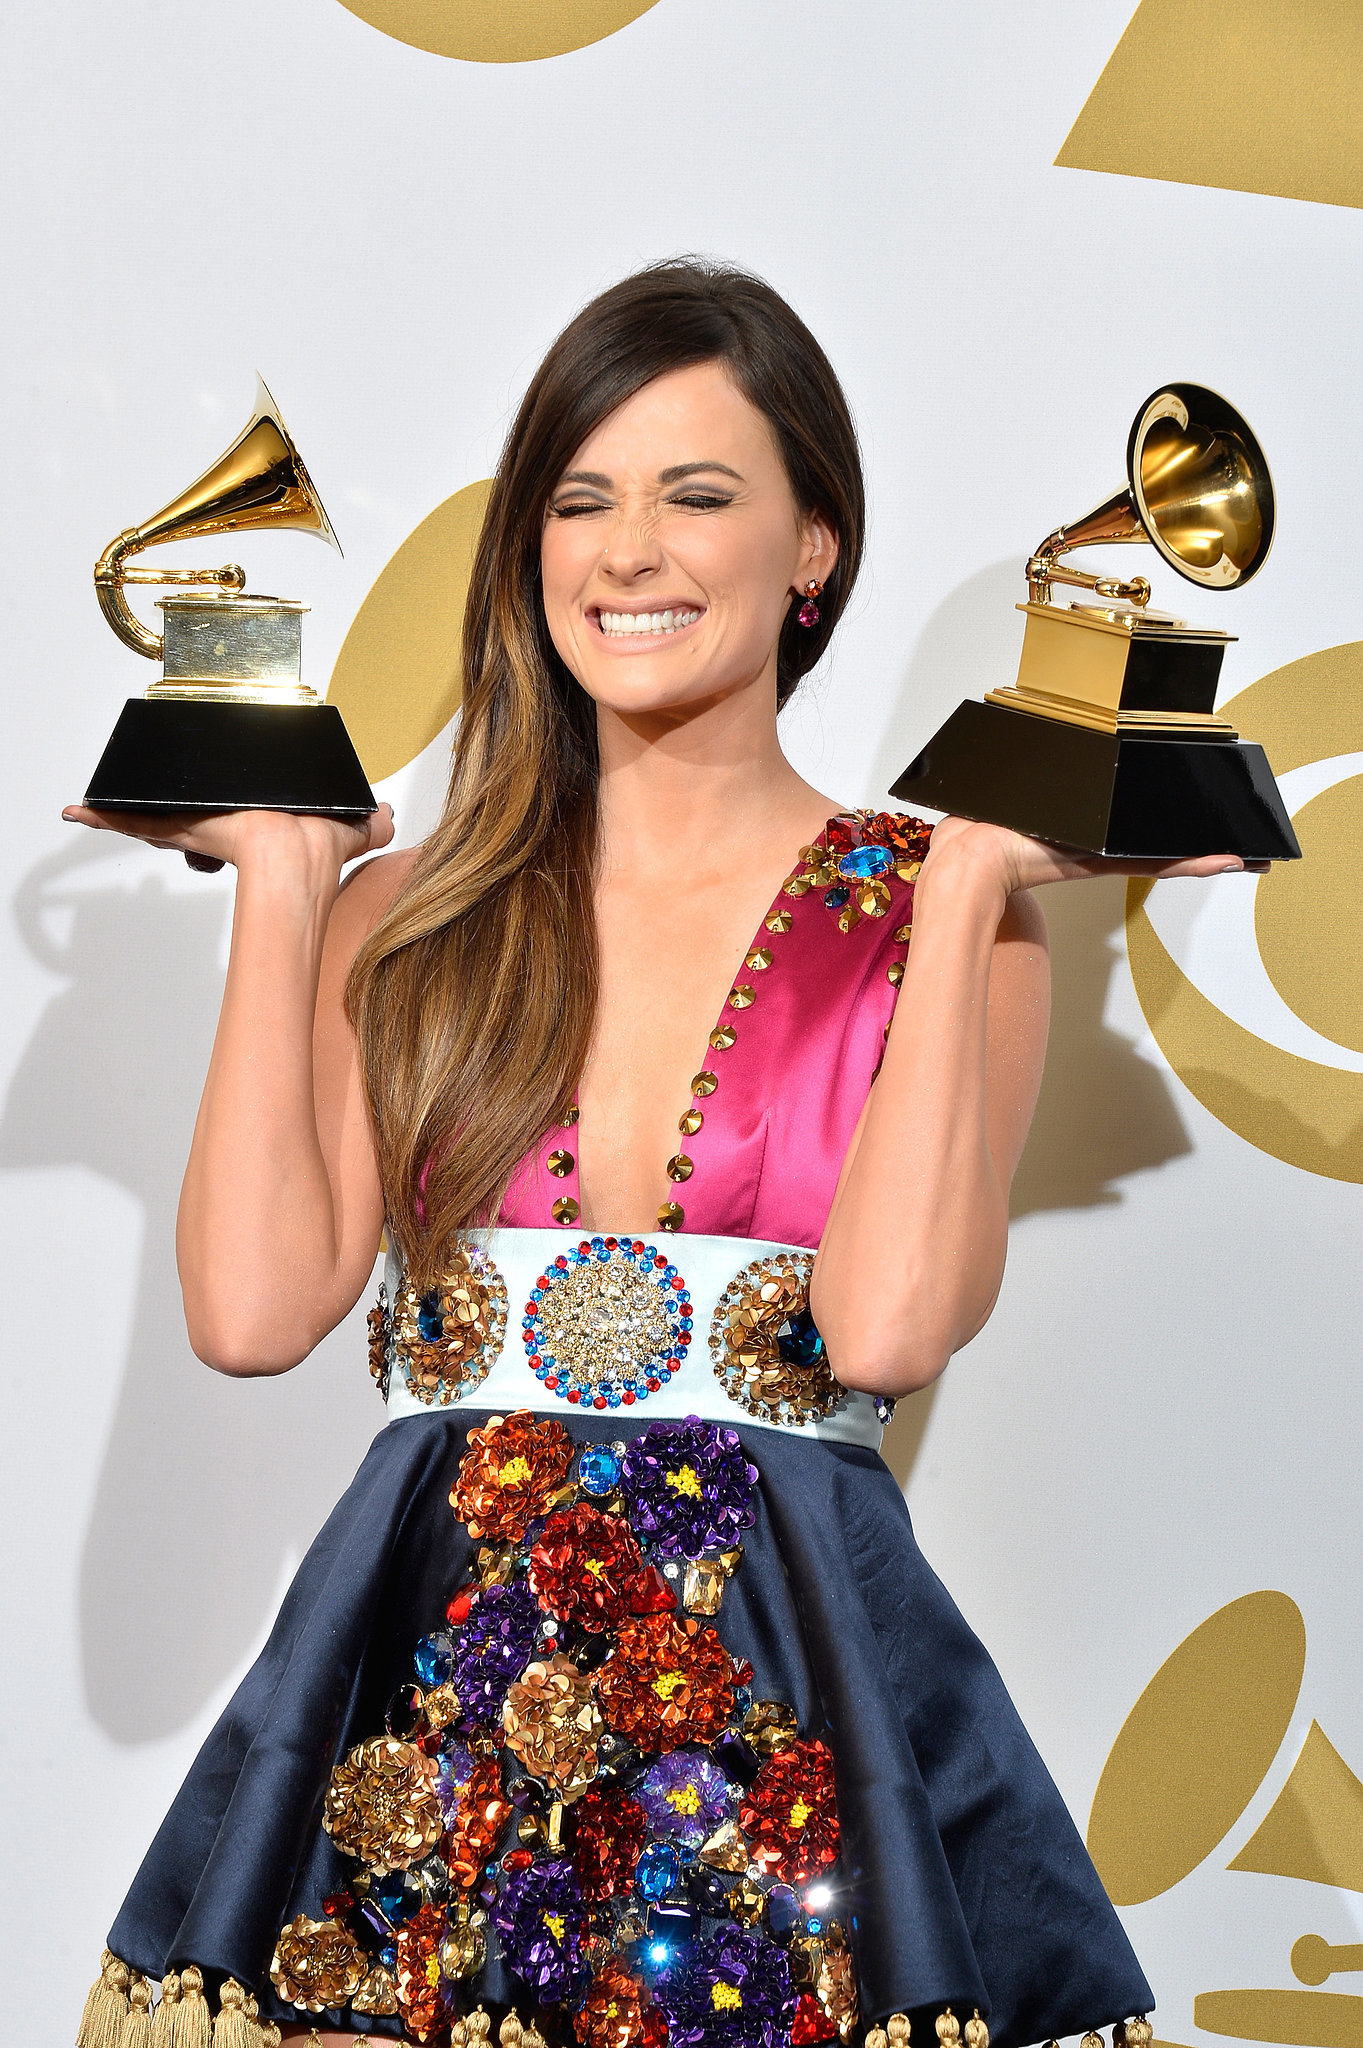 Kasey Musgraves Smiled Ear to Ear With Her Double Grammys